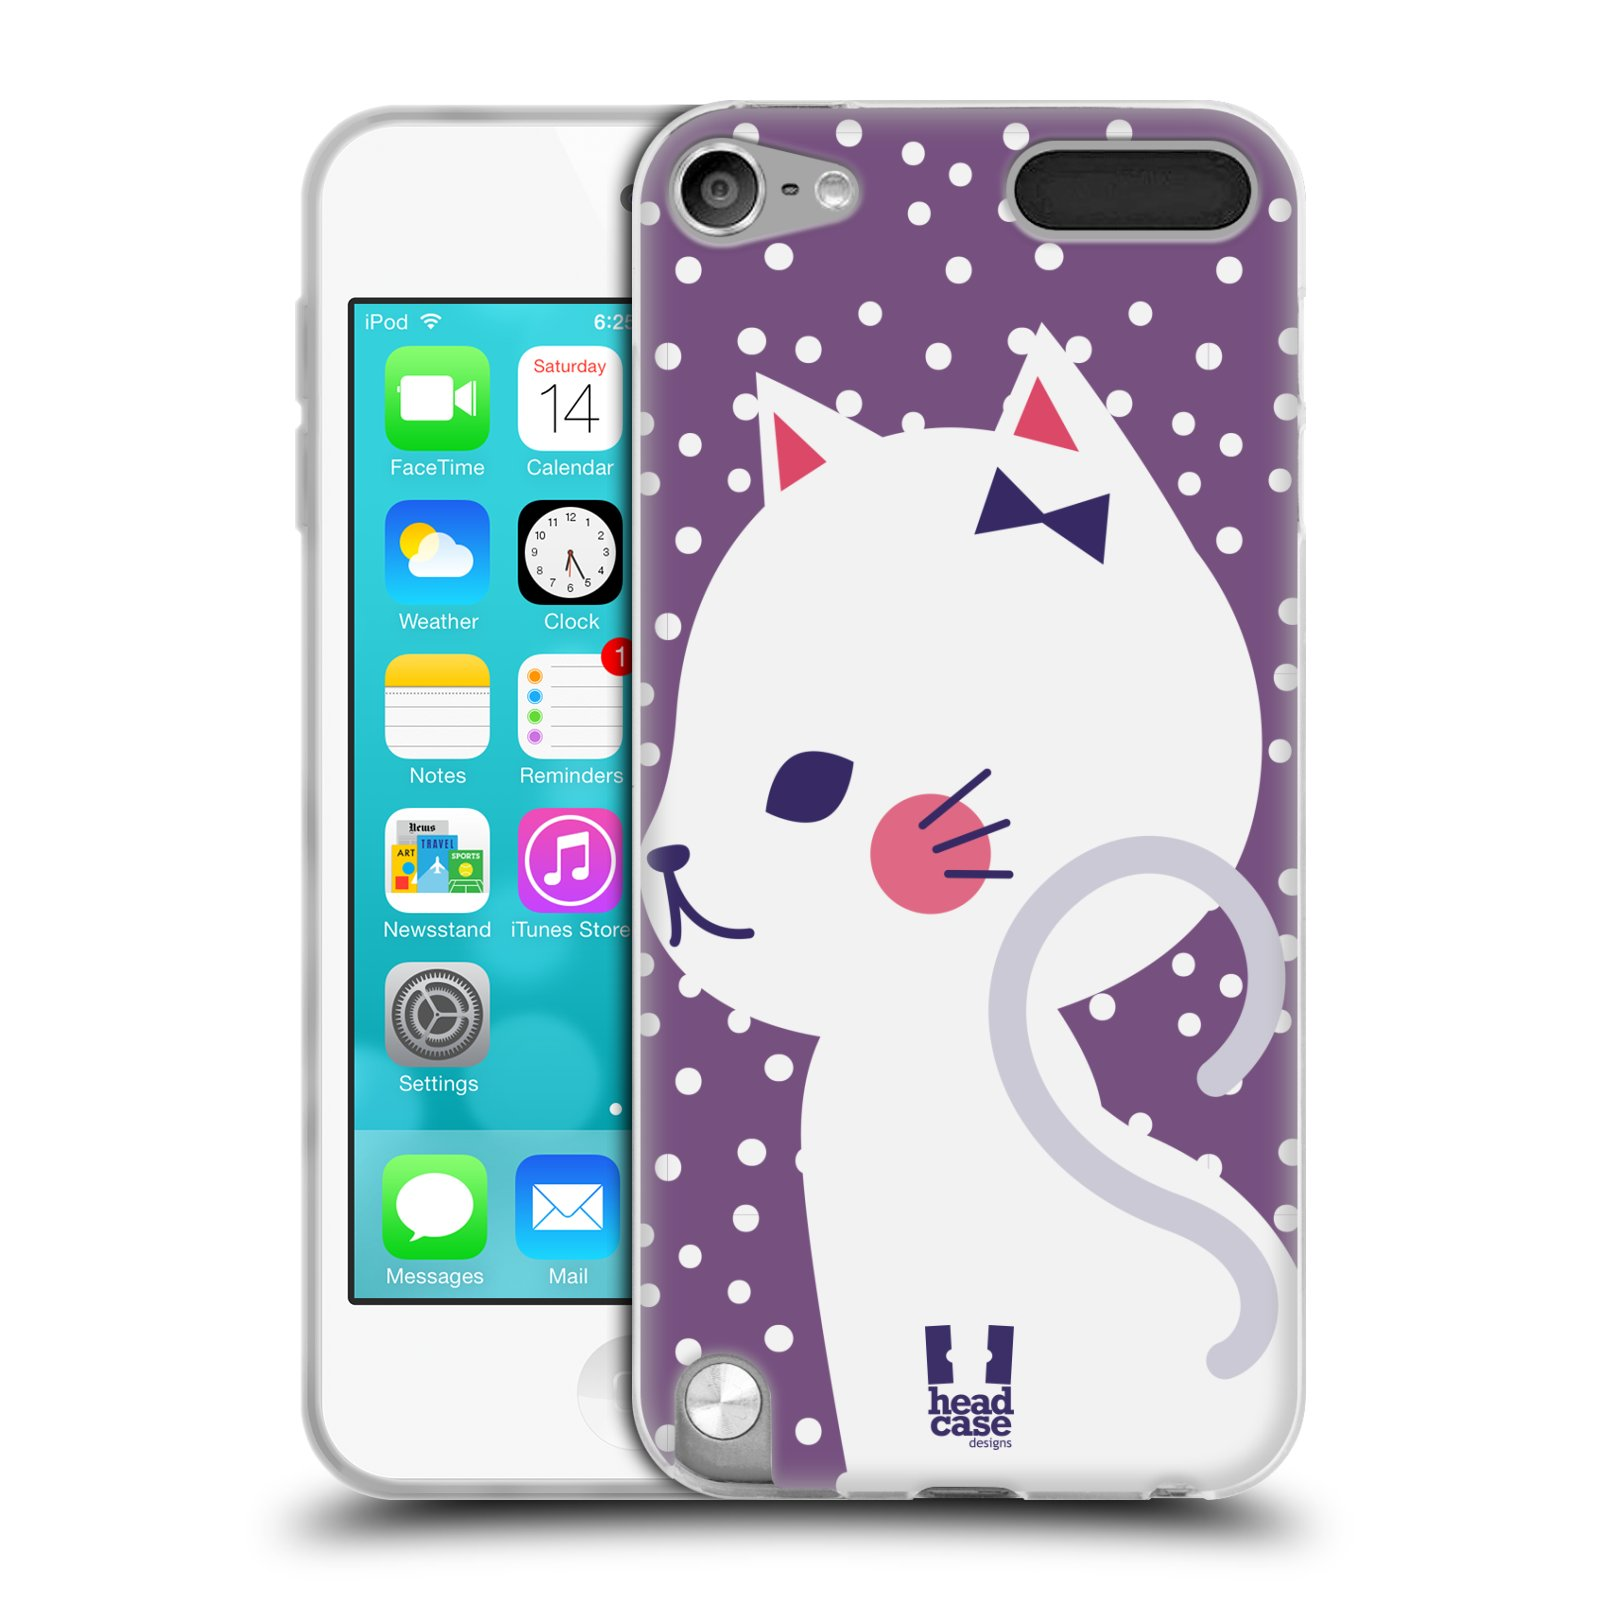 head case cats and dots soft gel case for apple ipod touch 6g 6th gen ebay. Black Bedroom Furniture Sets. Home Design Ideas